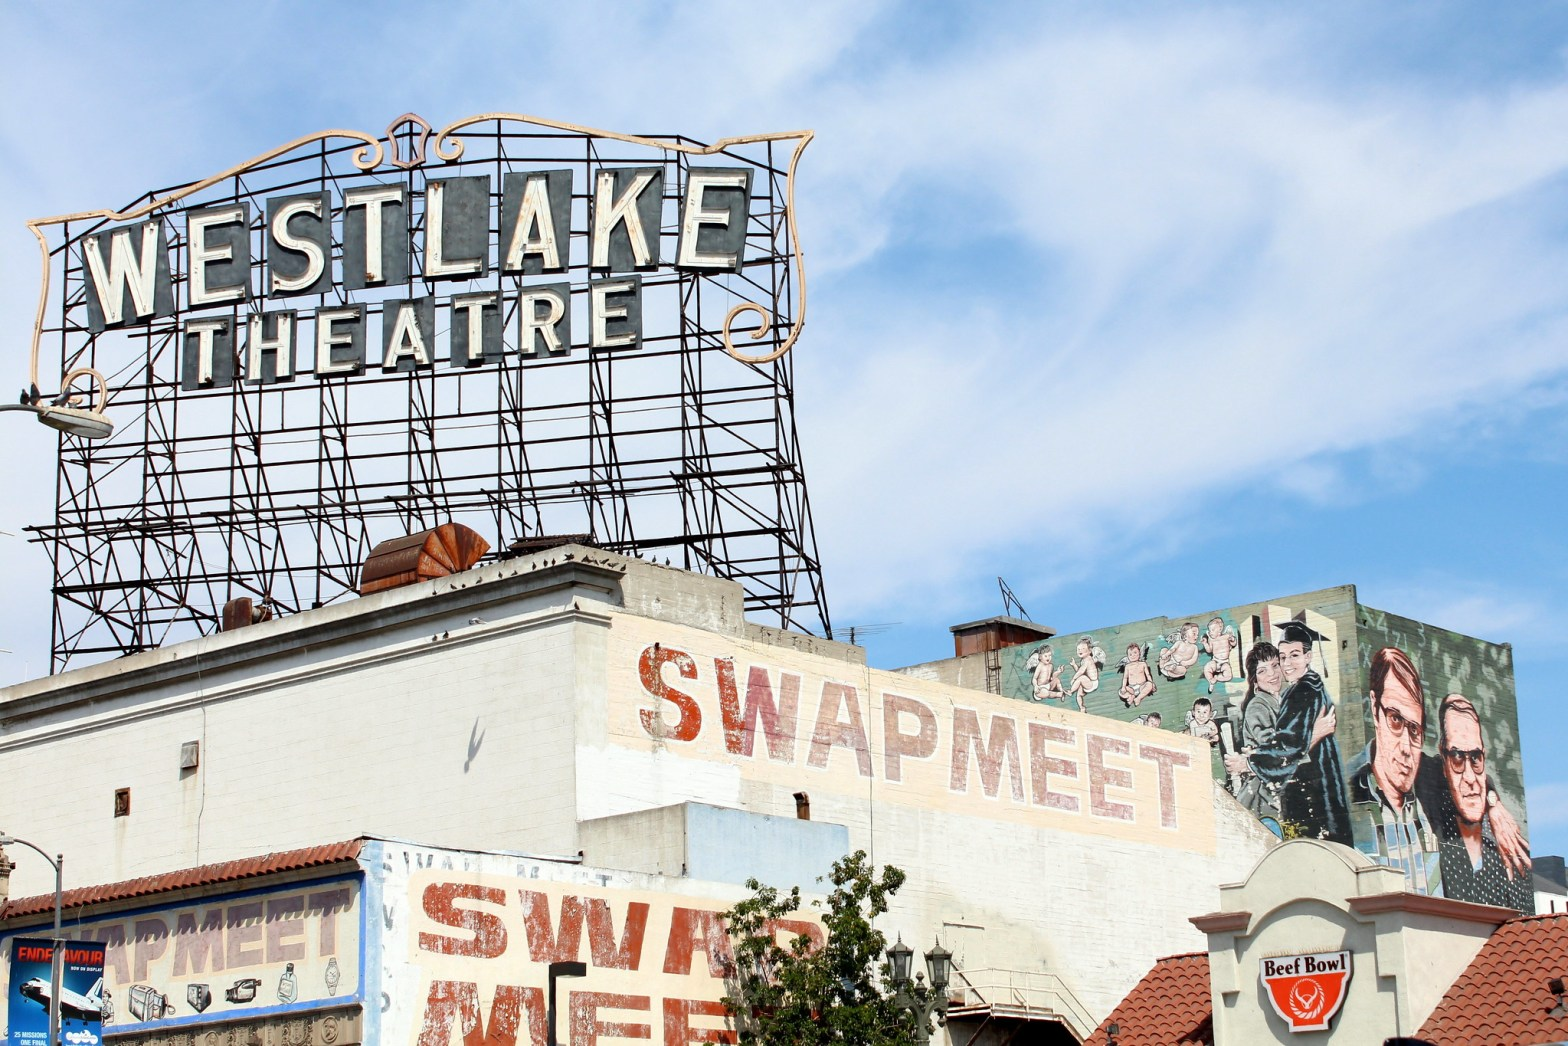 westlake theatre, rooms for rent